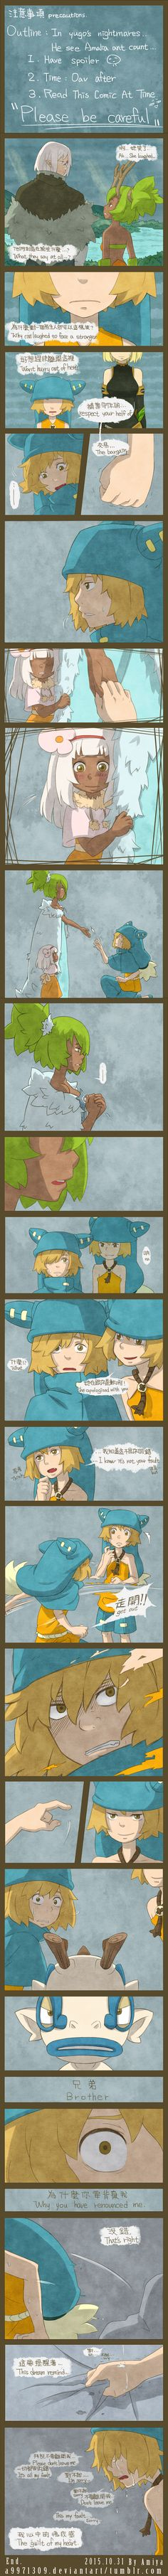 wakfu short comic - Nightmares by a9971309